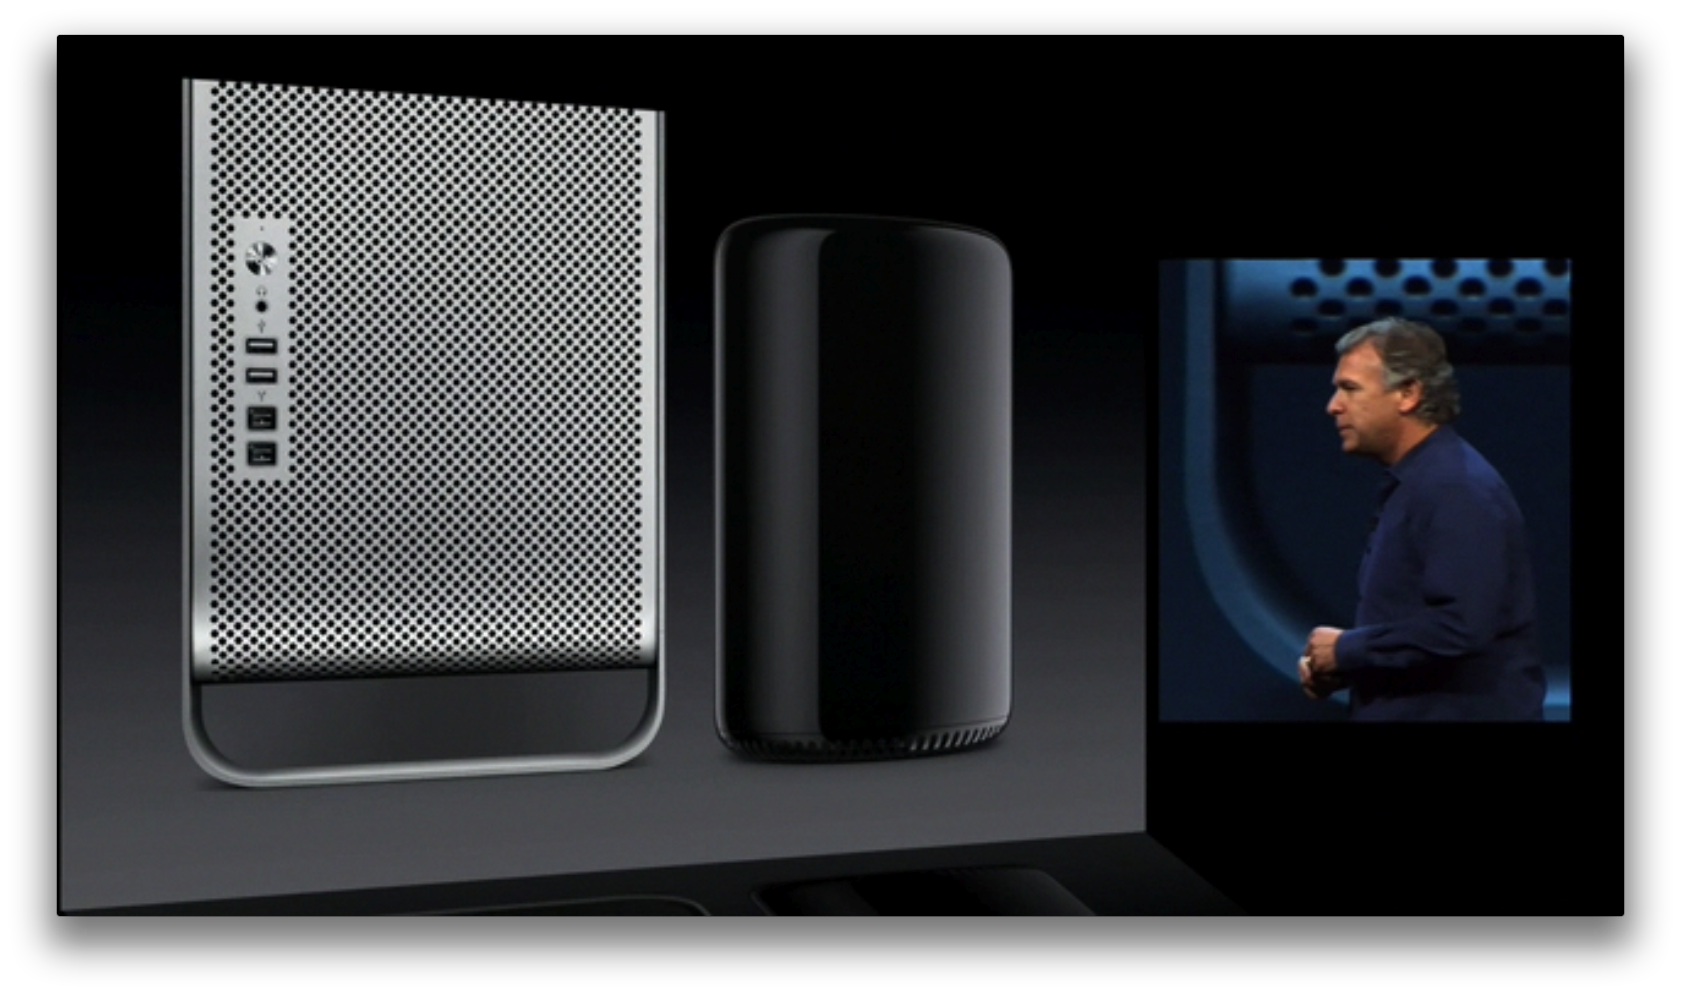 macpro-old-new